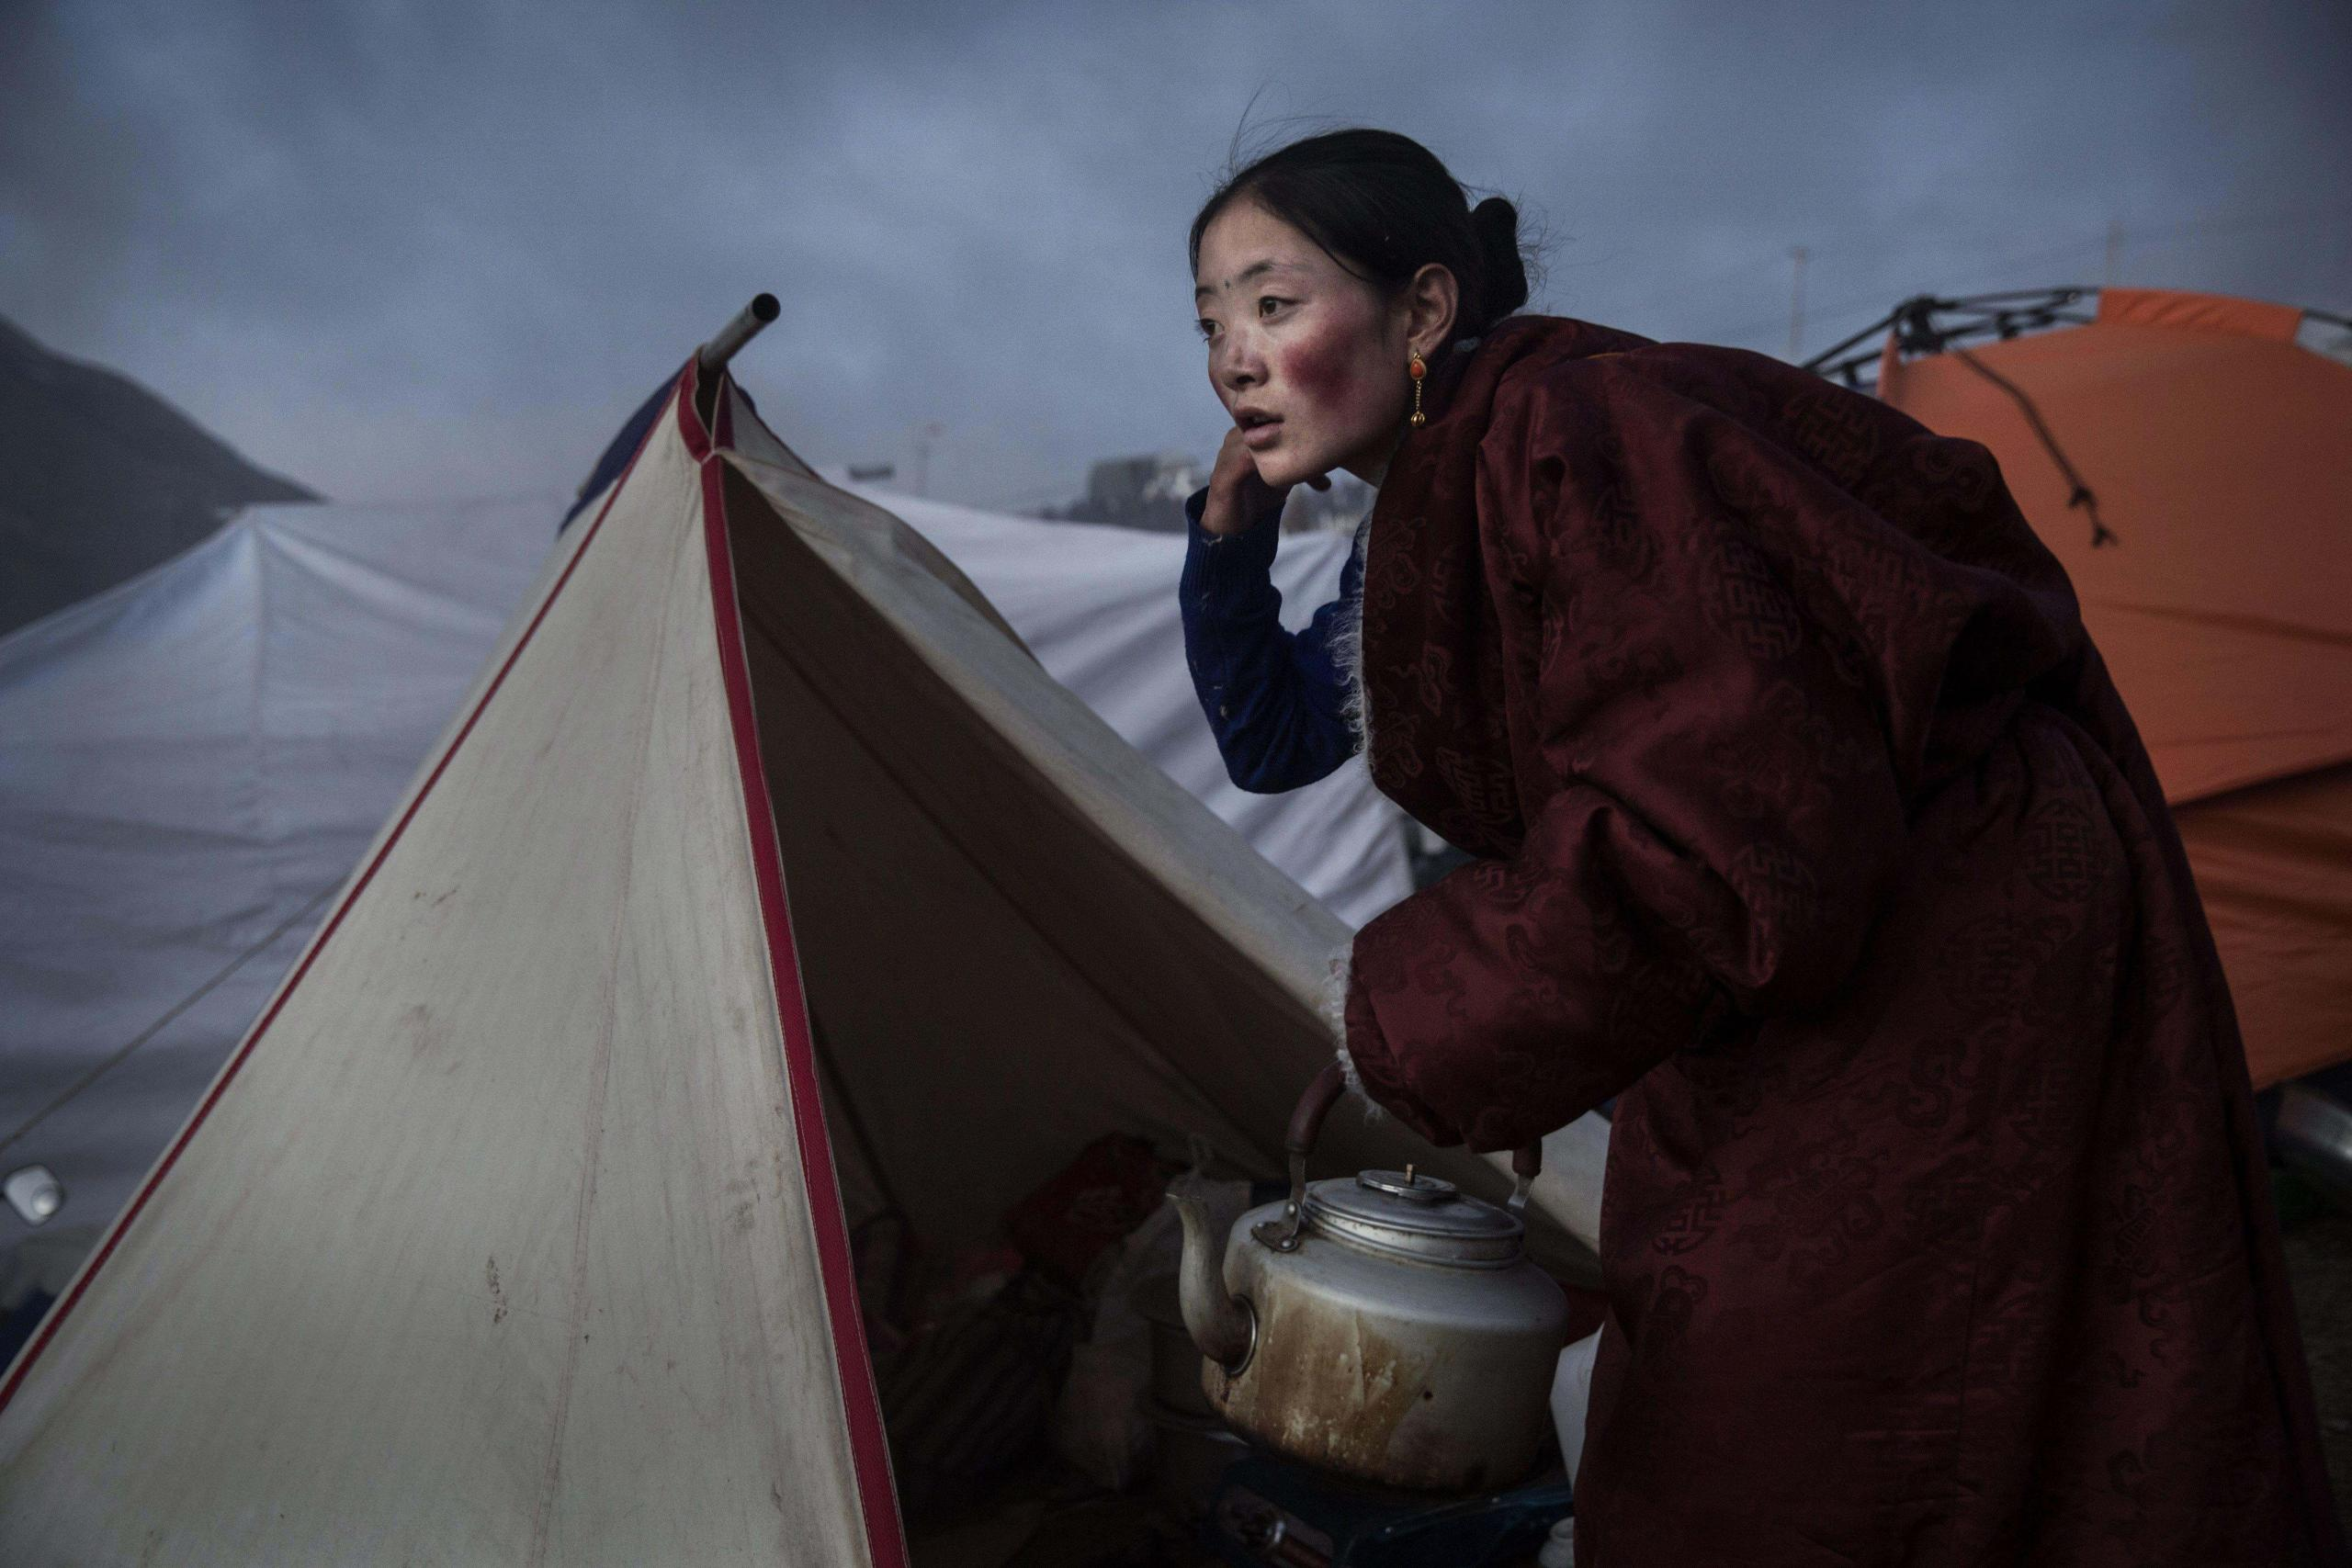 From the photo series Bliss Dharma Assembly by Kevin Frayer. A Tibetan Buddhist nomad woman prepares tea at dusk, following a chanting session.